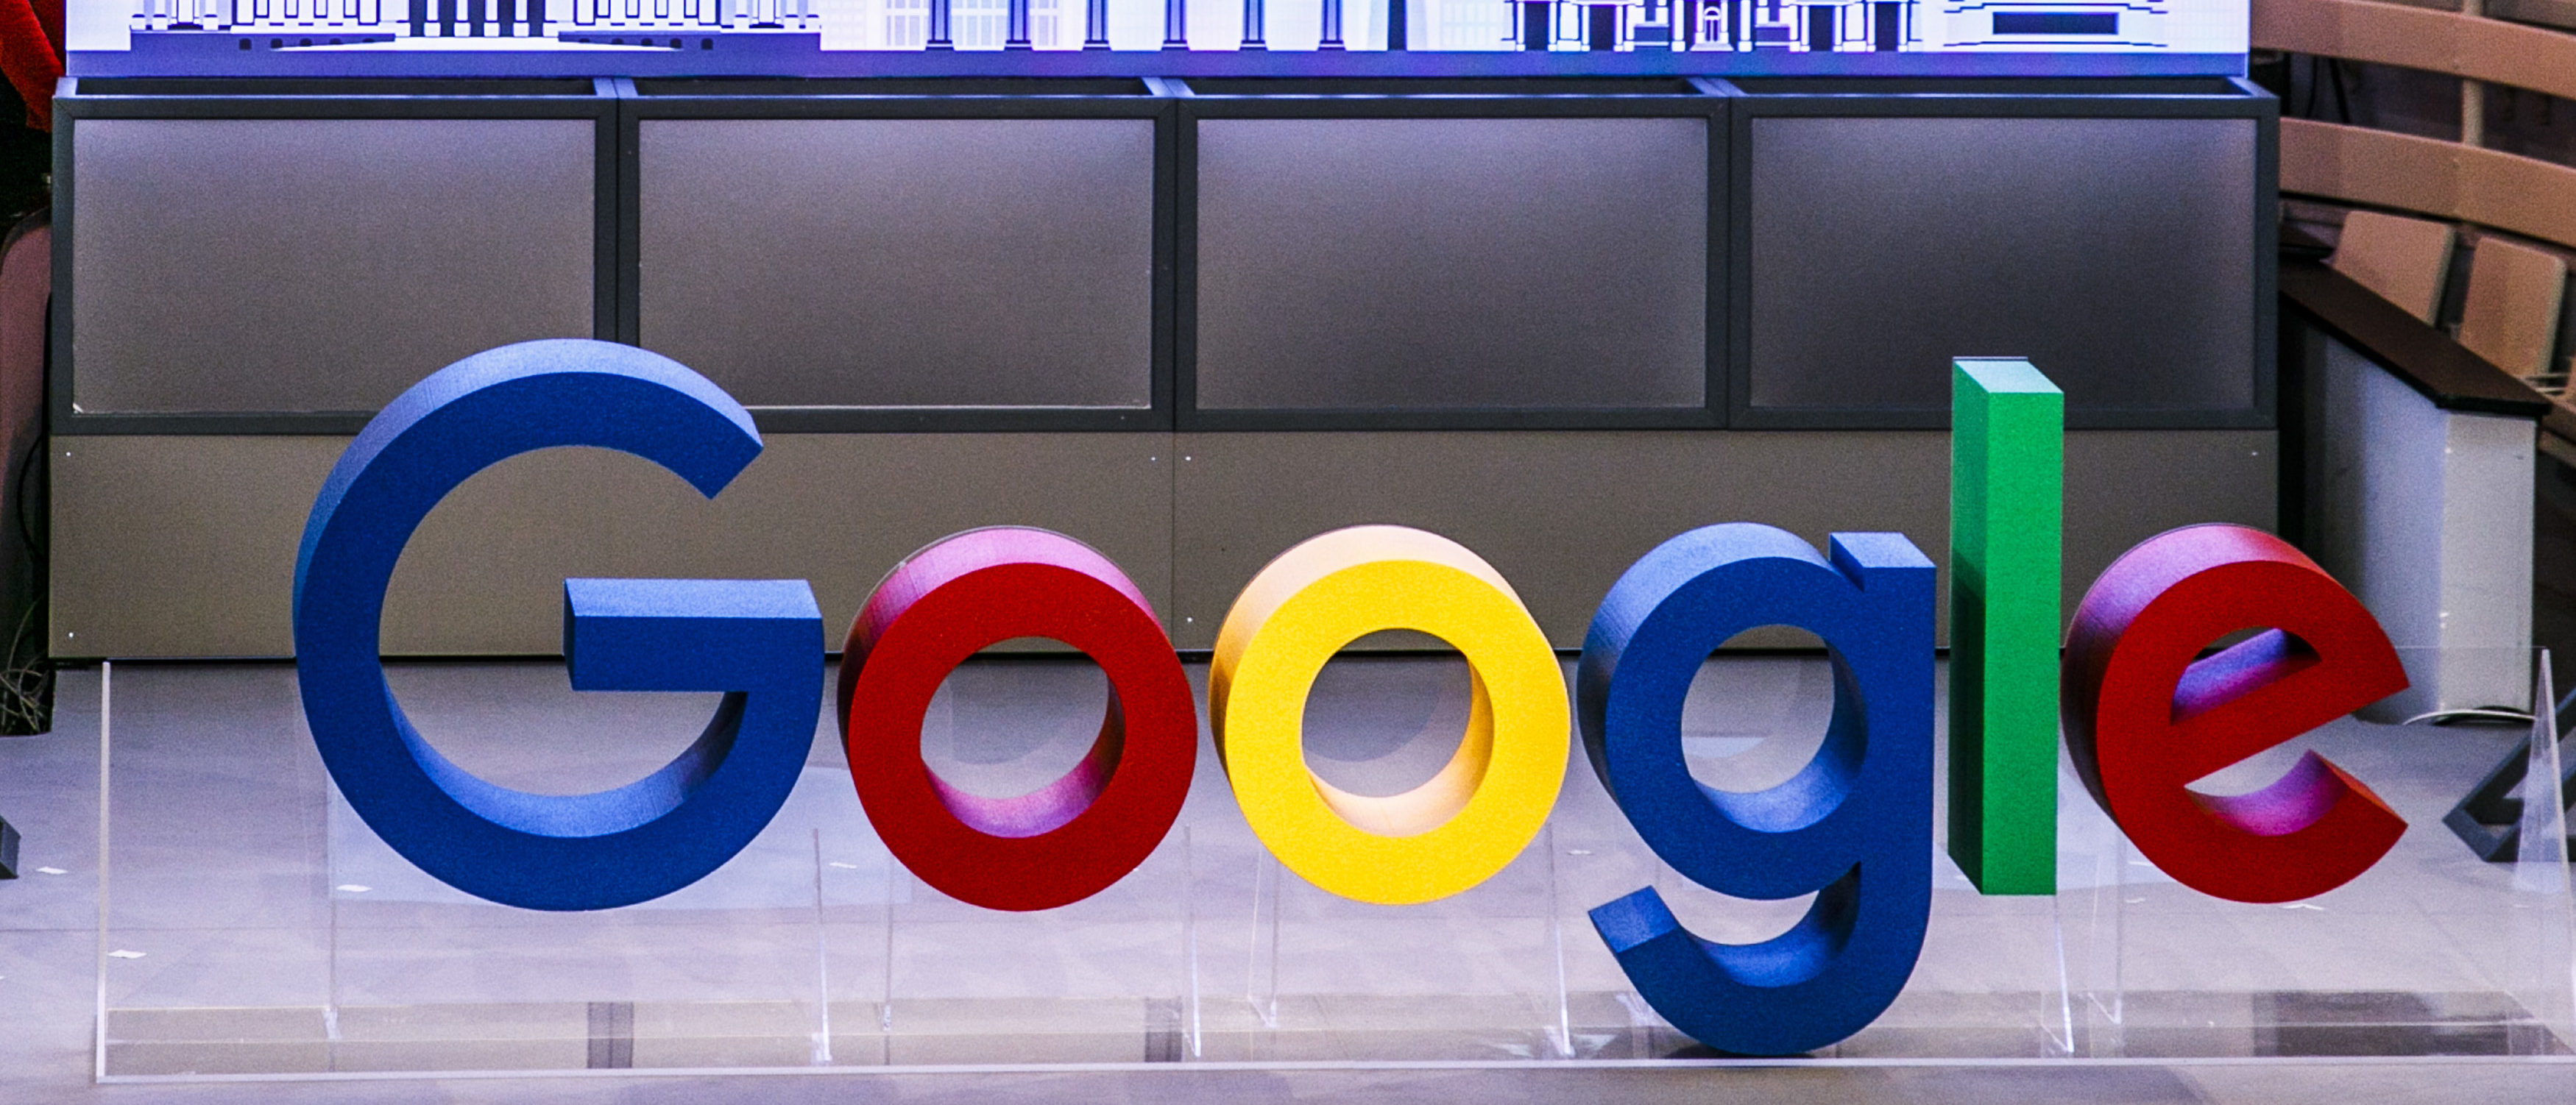 BERLIN, GERMANY - JANUARY 22: Letters show the name Google on the stage in the auditorium before the festive opening of the Berlin representation of Google Germany on January 22, 2019 in Berlin, Germany. Carsten Koall/Getty Images)